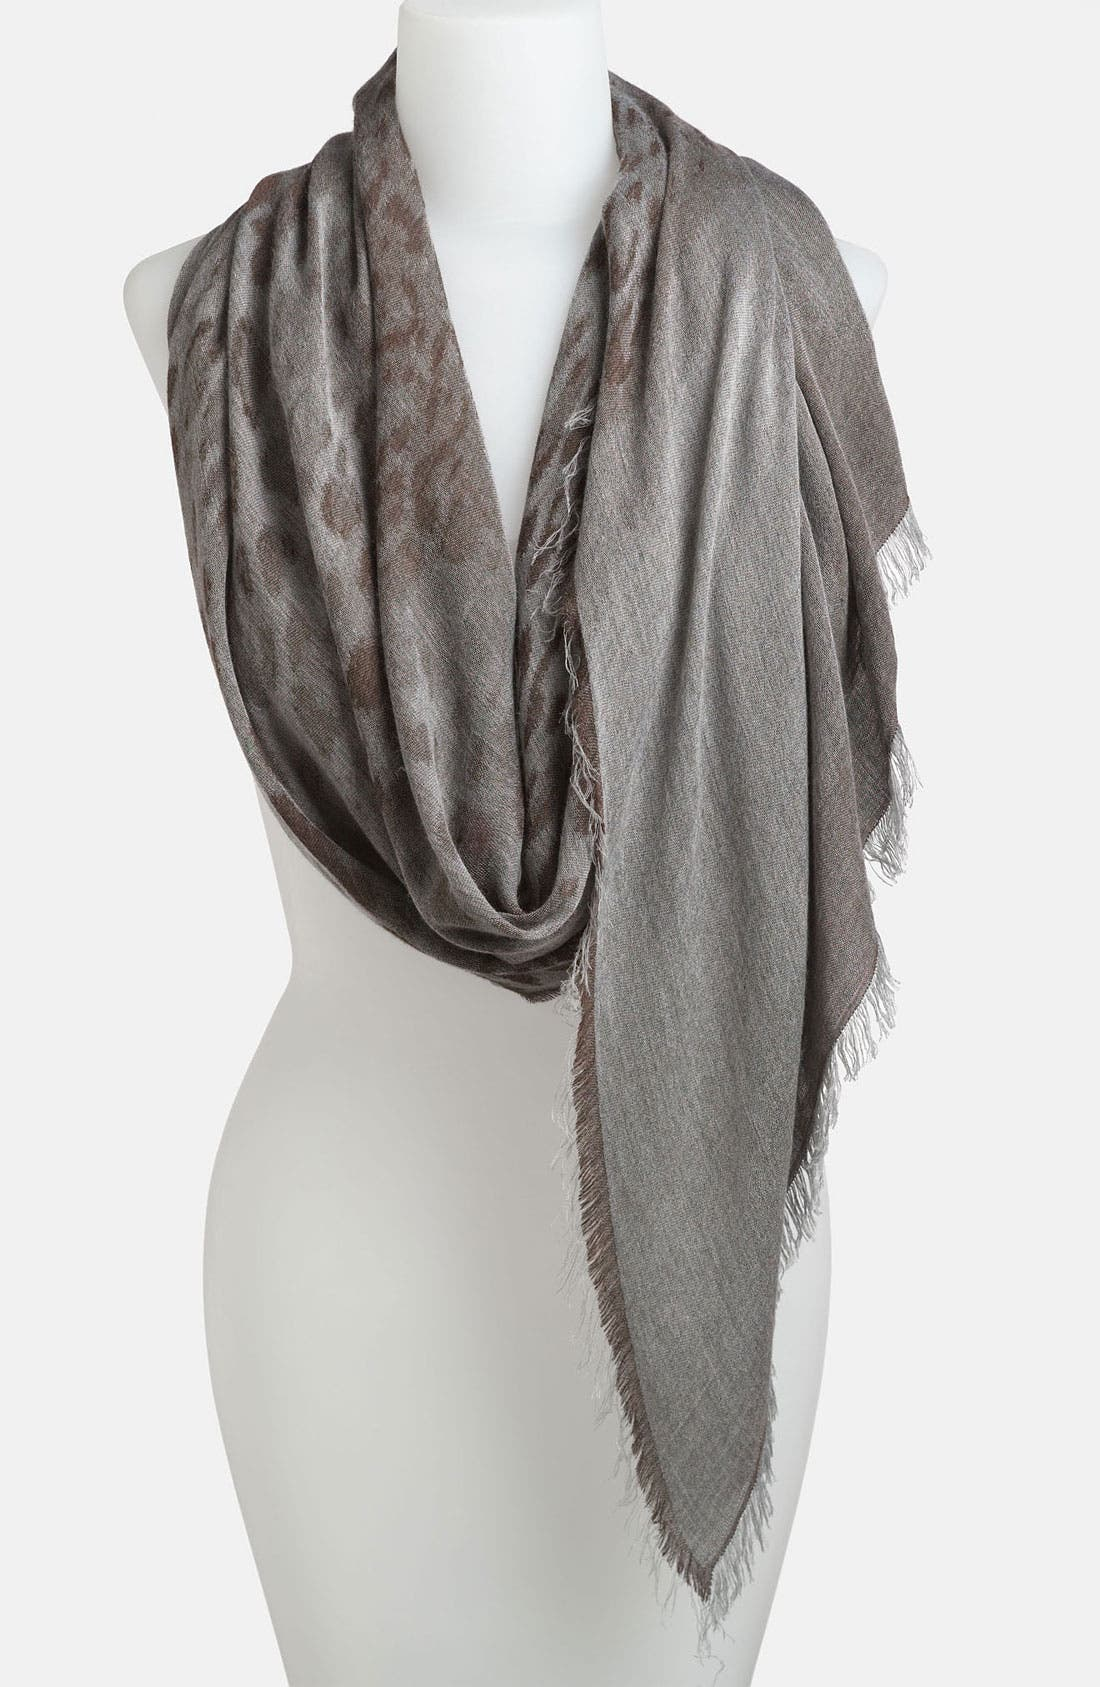 Main Image - Nordstrom 'Blurred Animal' Scarf